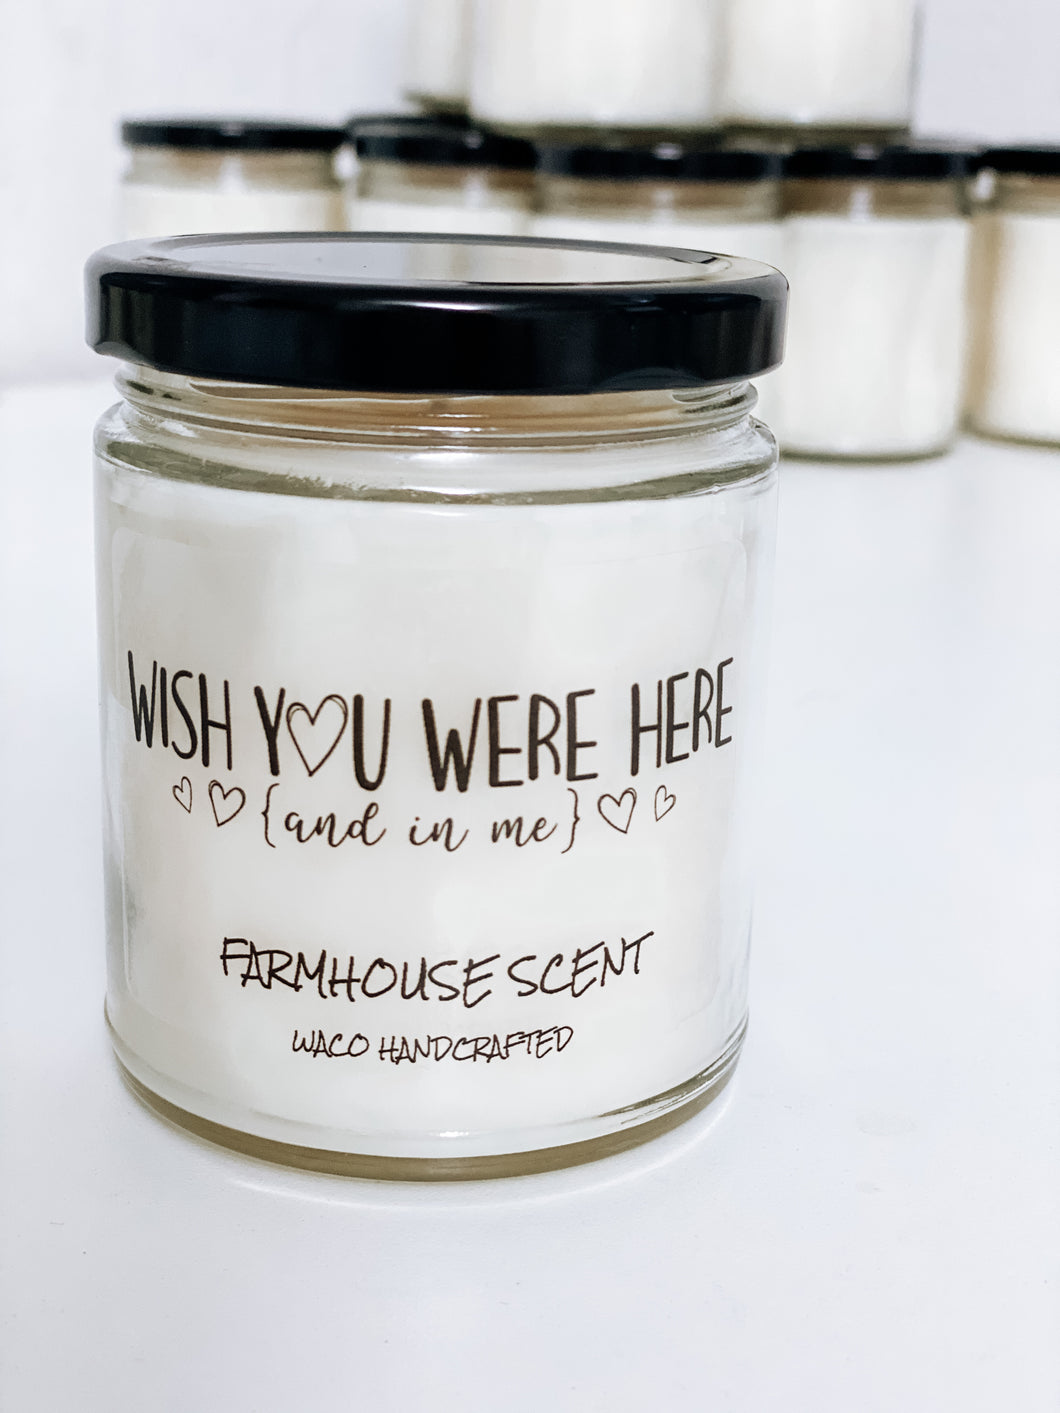 Wish You Were Here Scented Candle | 9 oz or 16 oz | Novelty Candle - Waco Handcrafted